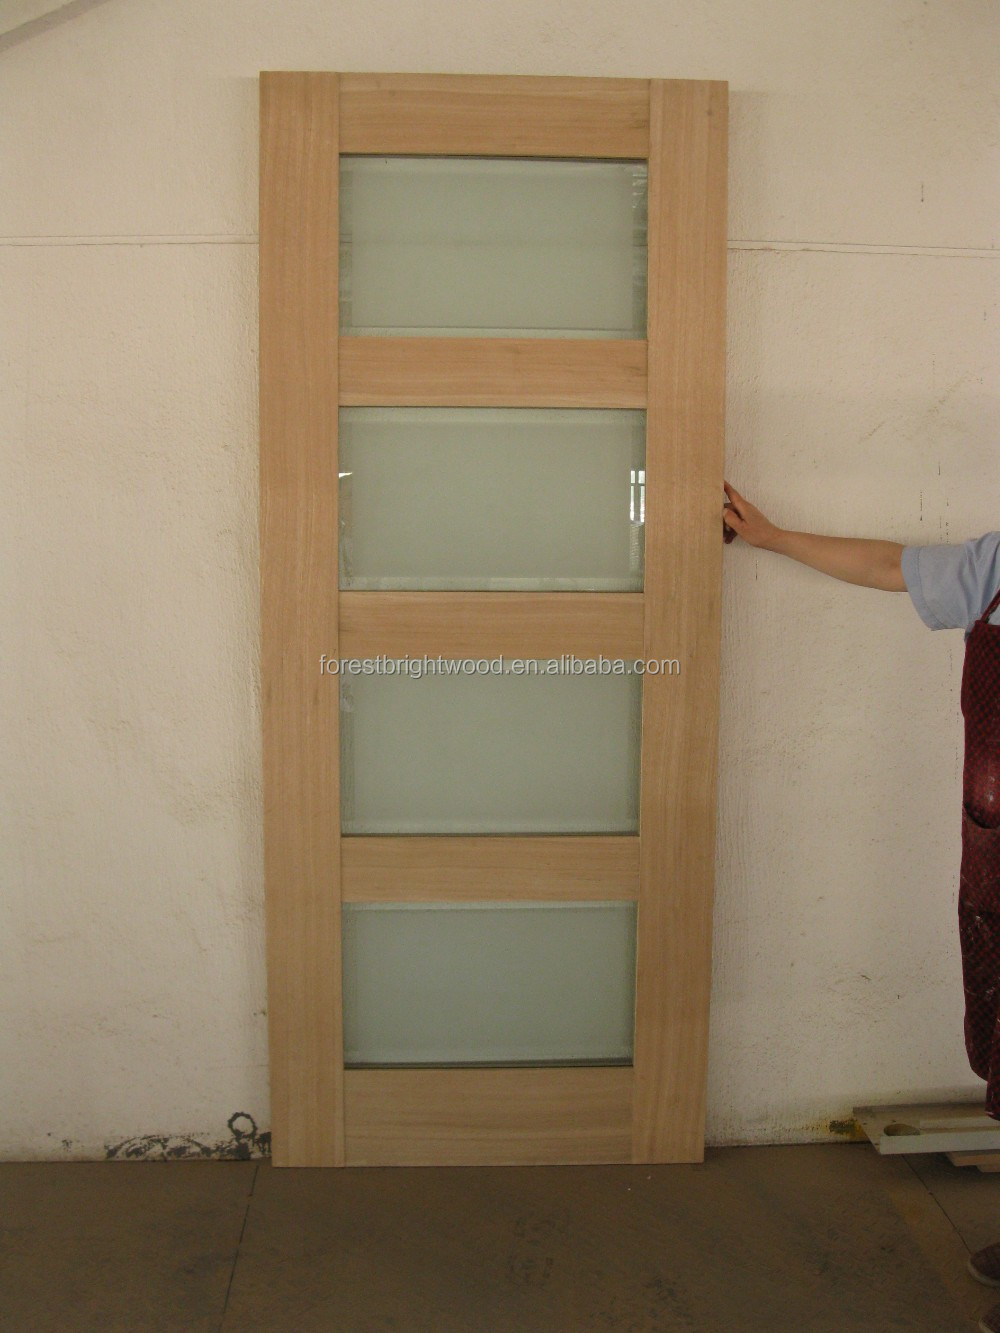 Wood Interior Sliding Frosted Glass Pocket Doors View